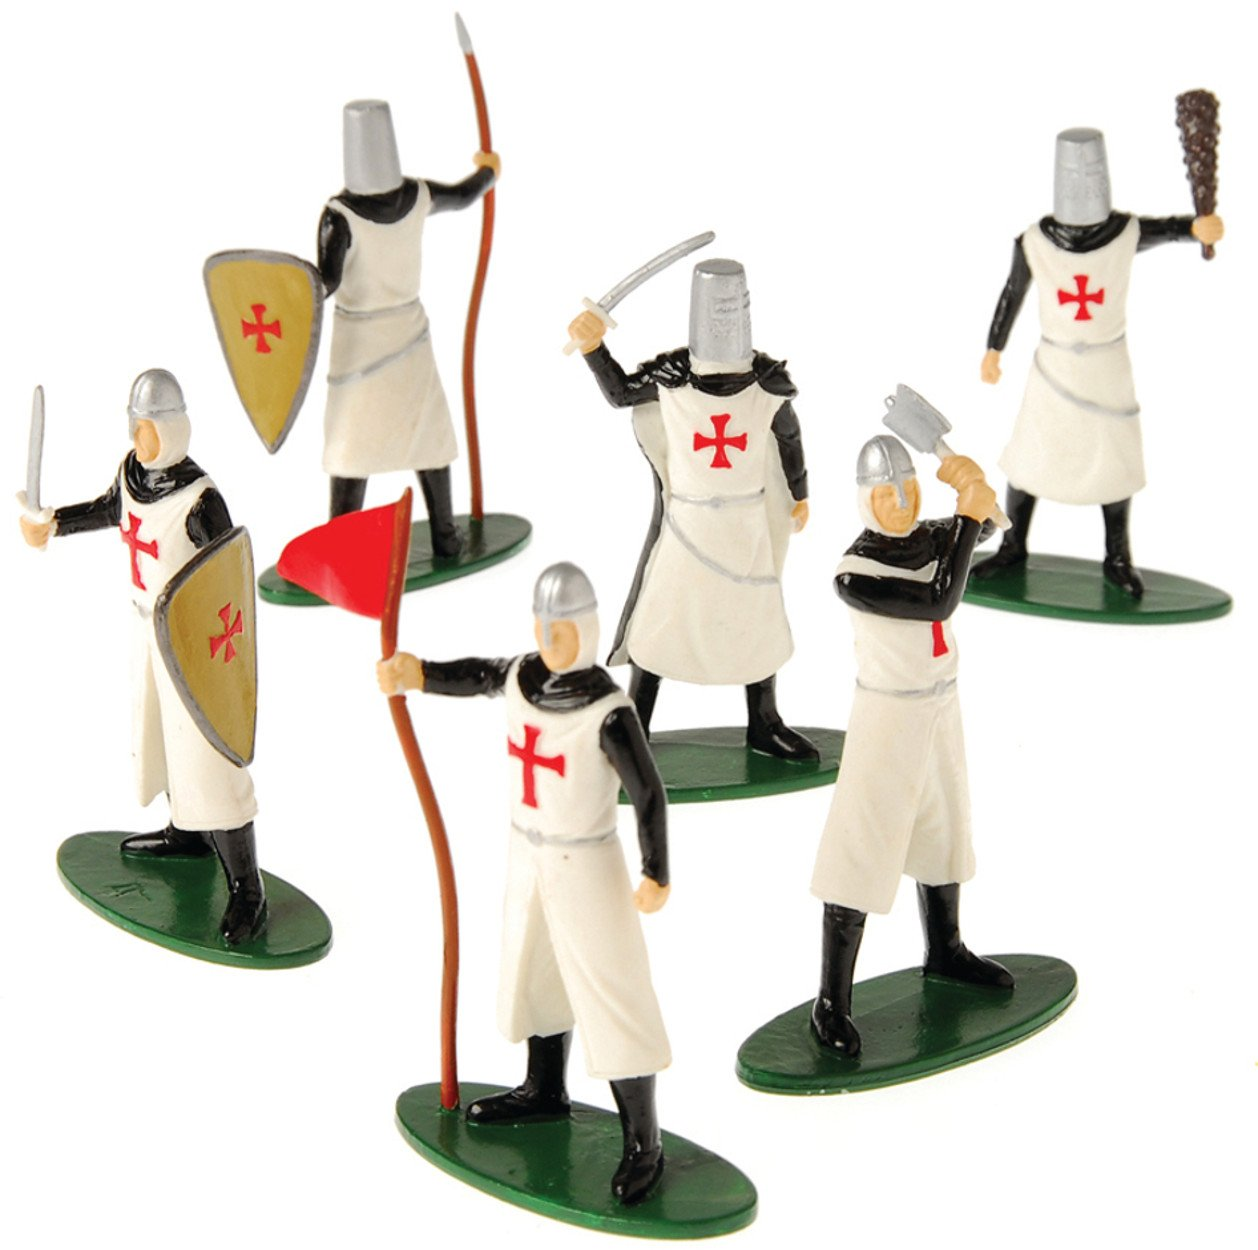 12 DELUXE TOY KNIGHT MEDIEVAL - CRUSADER PLAY FIGURES